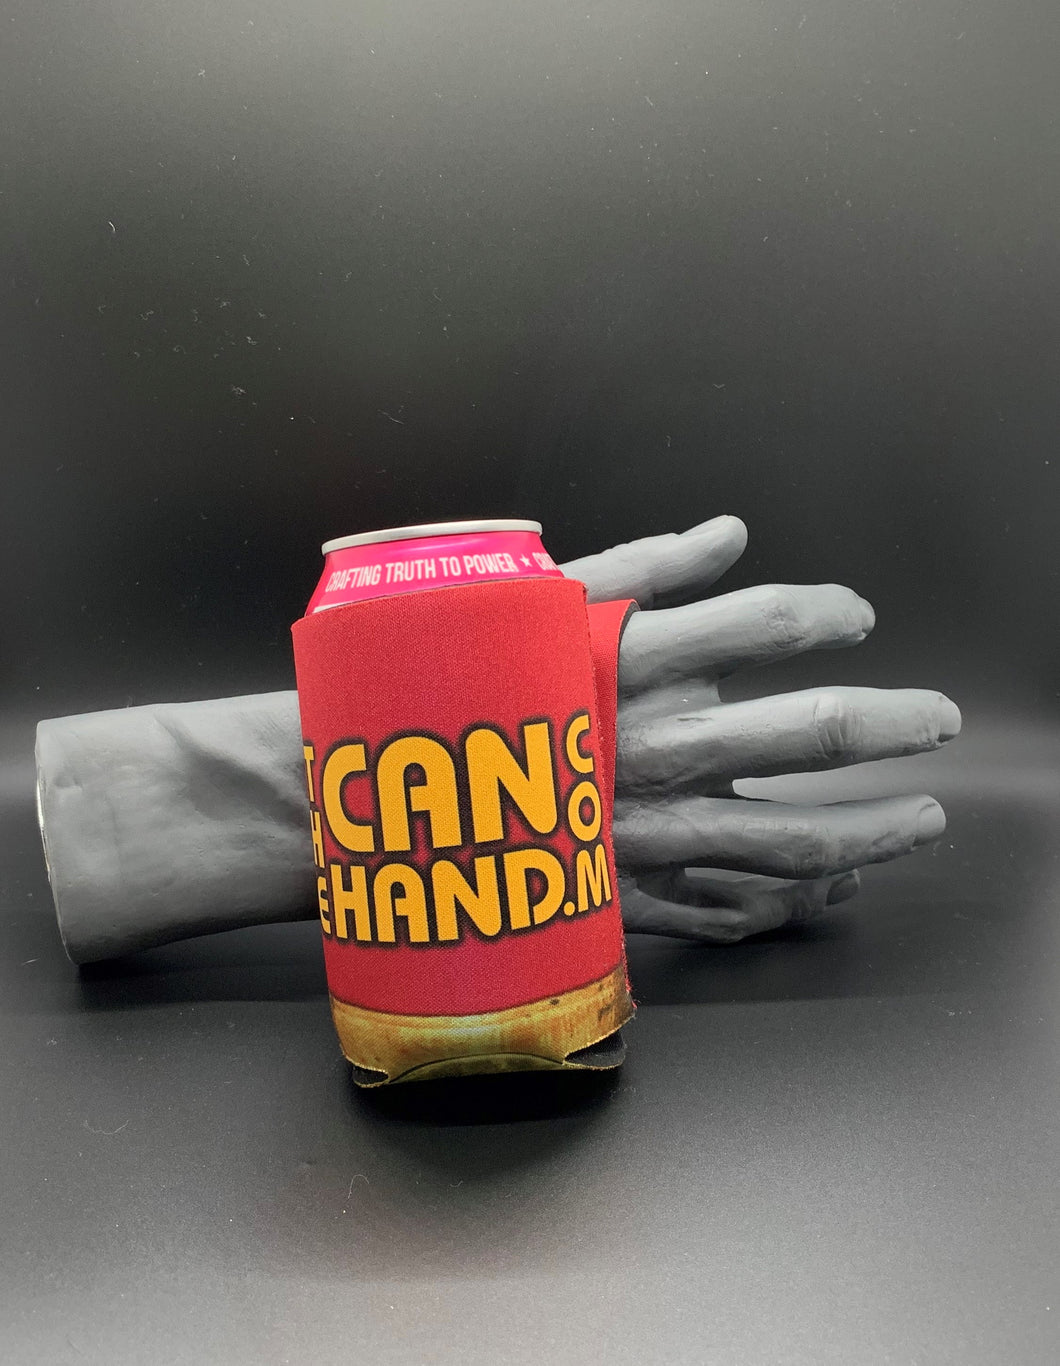 The Can Hand - Hunters Delight Edition.